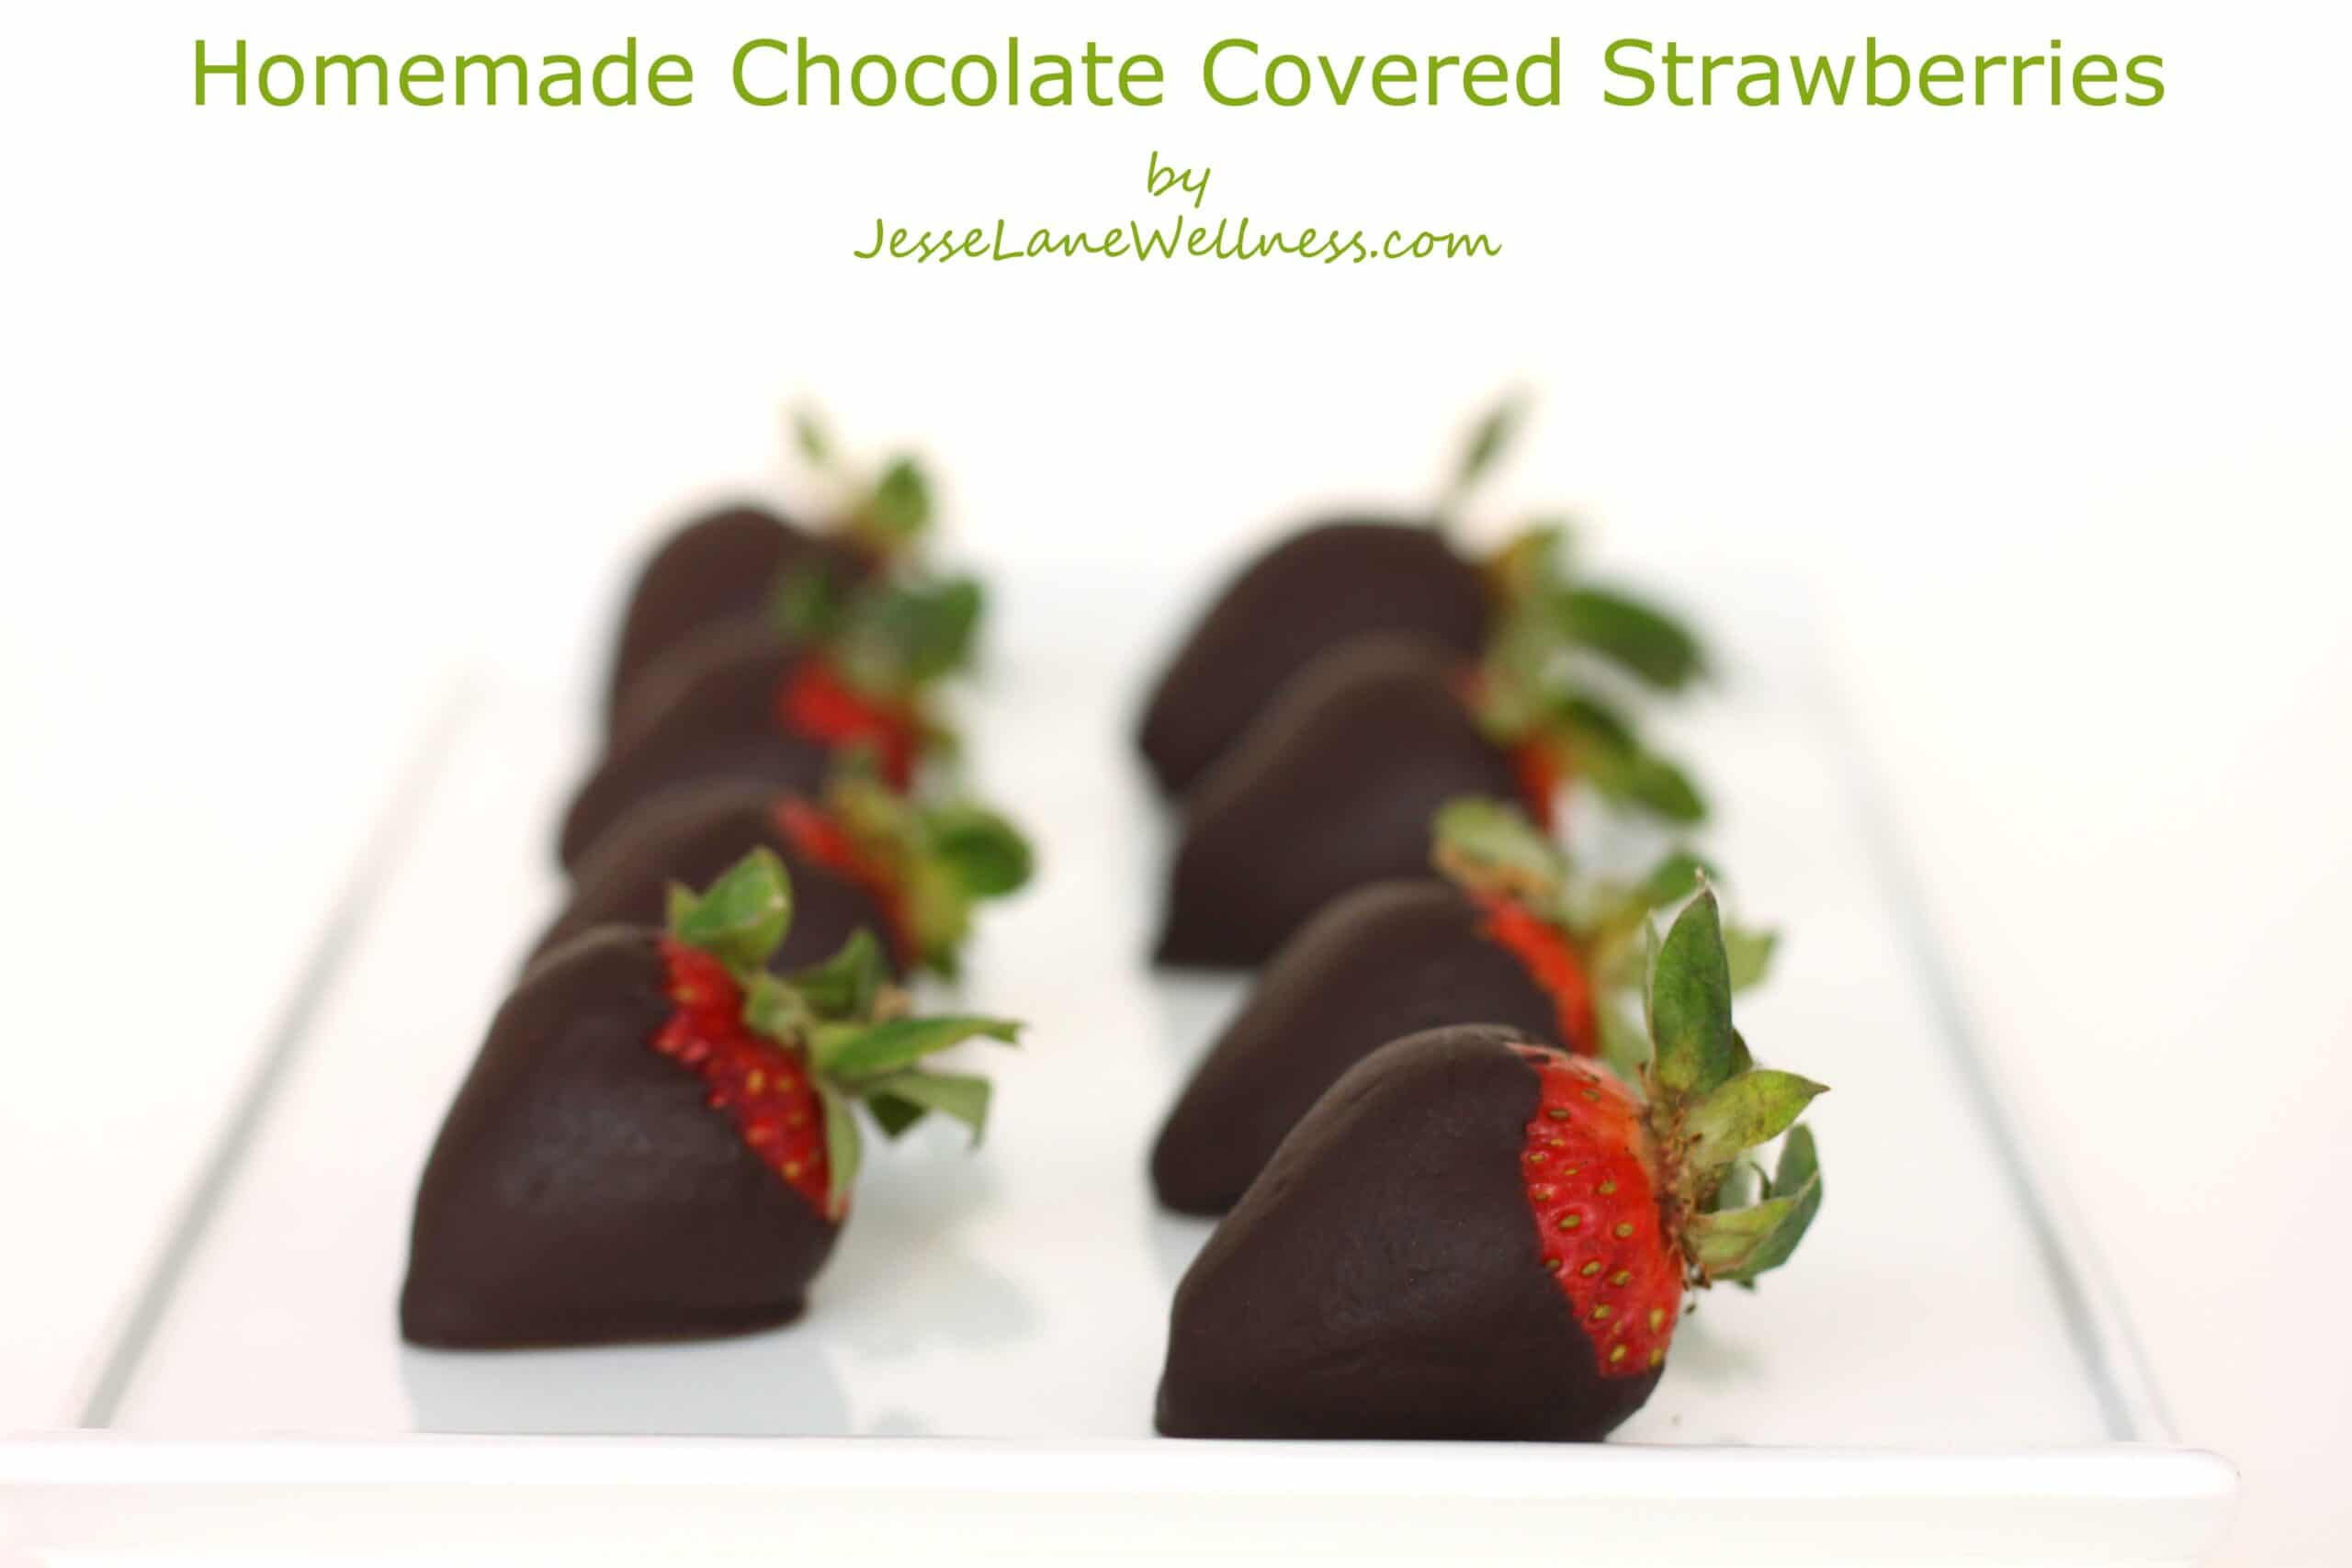 Homemade Chocolate Covered Strawberries - Jesse Lane Wellness